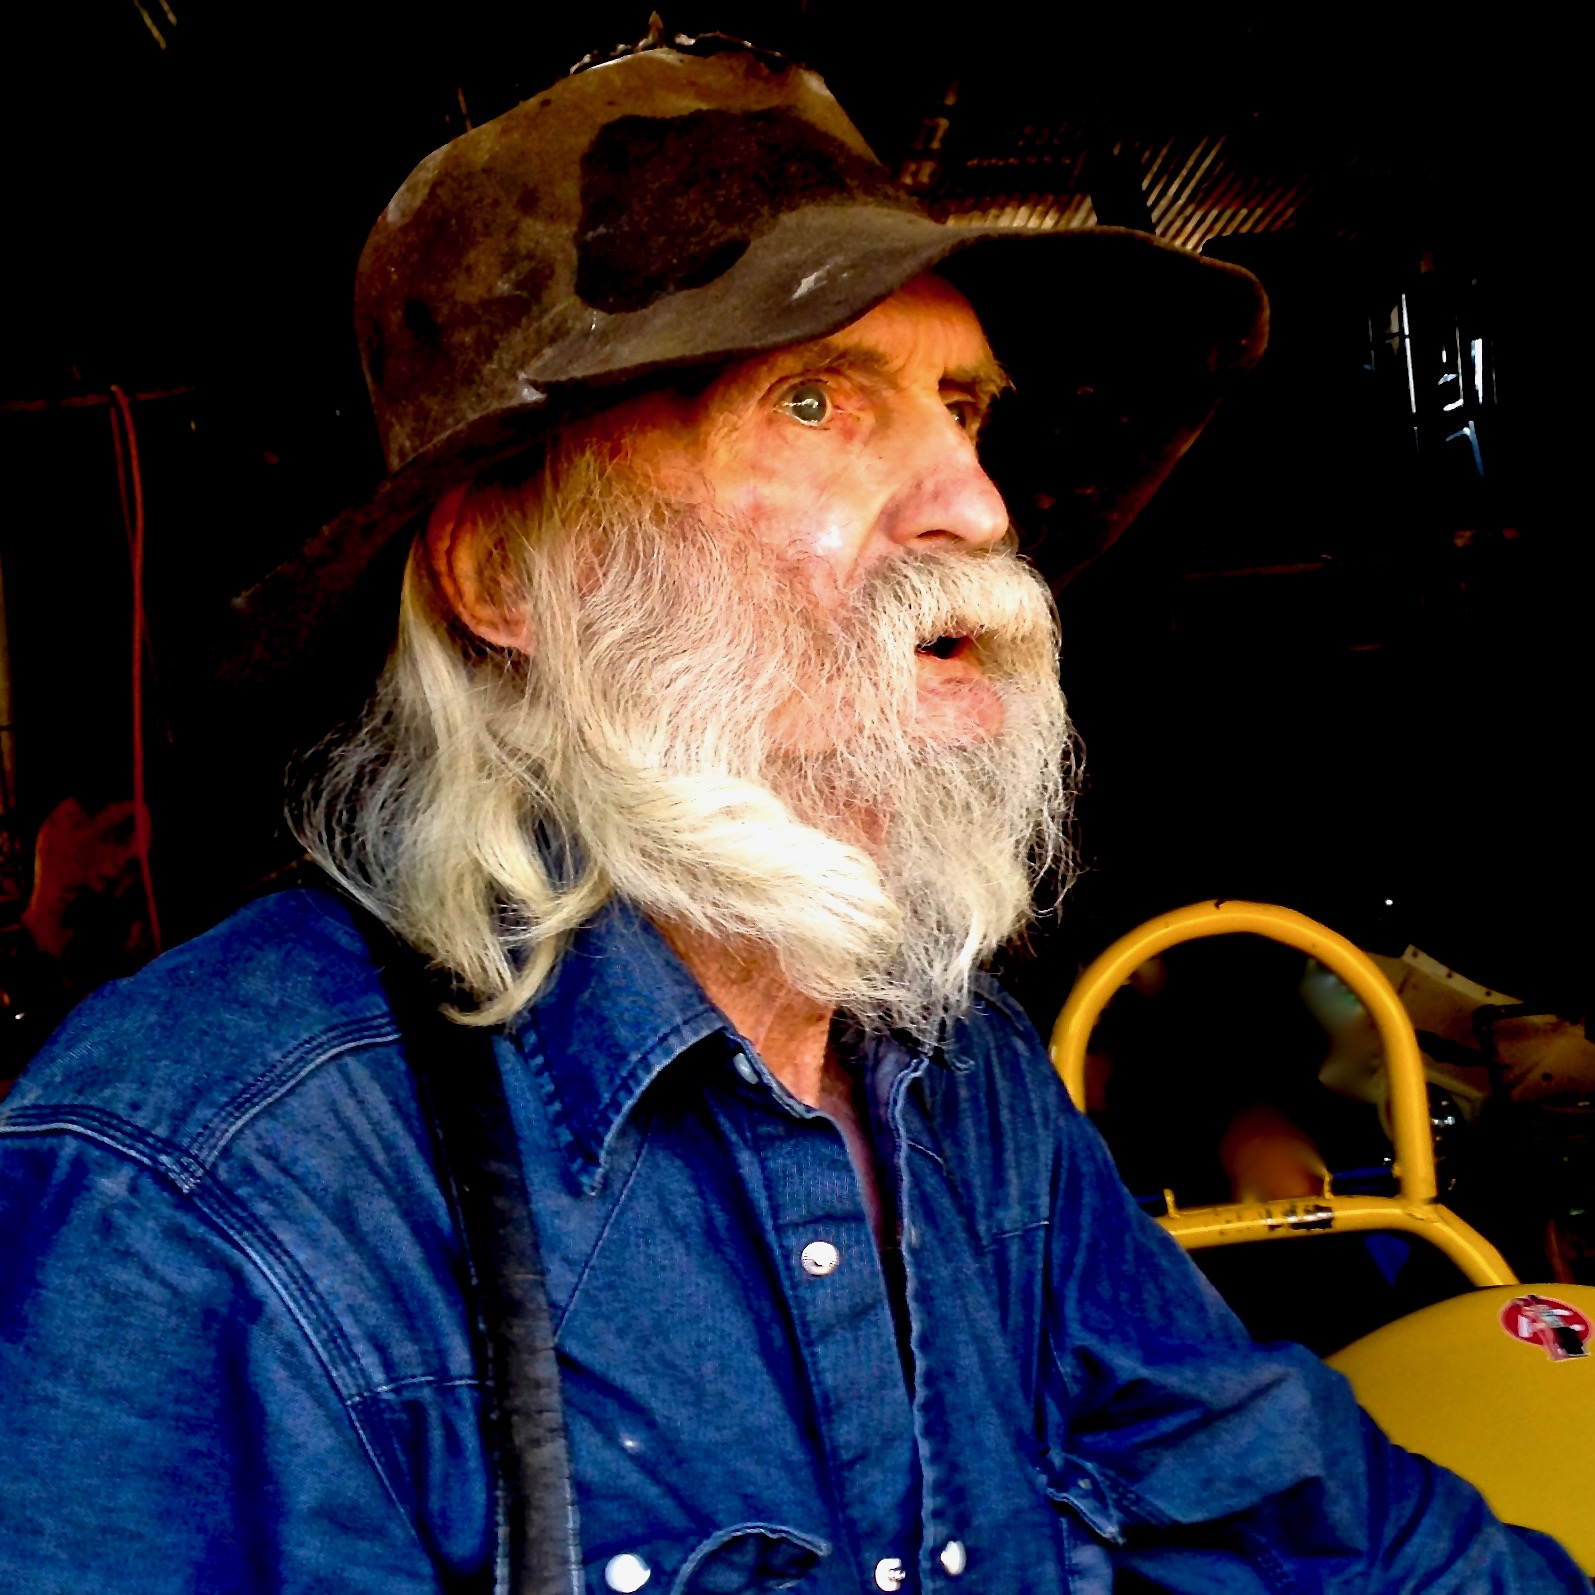 Taken in the garage of a well-known junk collector in Jerome, Arizona using natural light with fill flash on iPhone6.